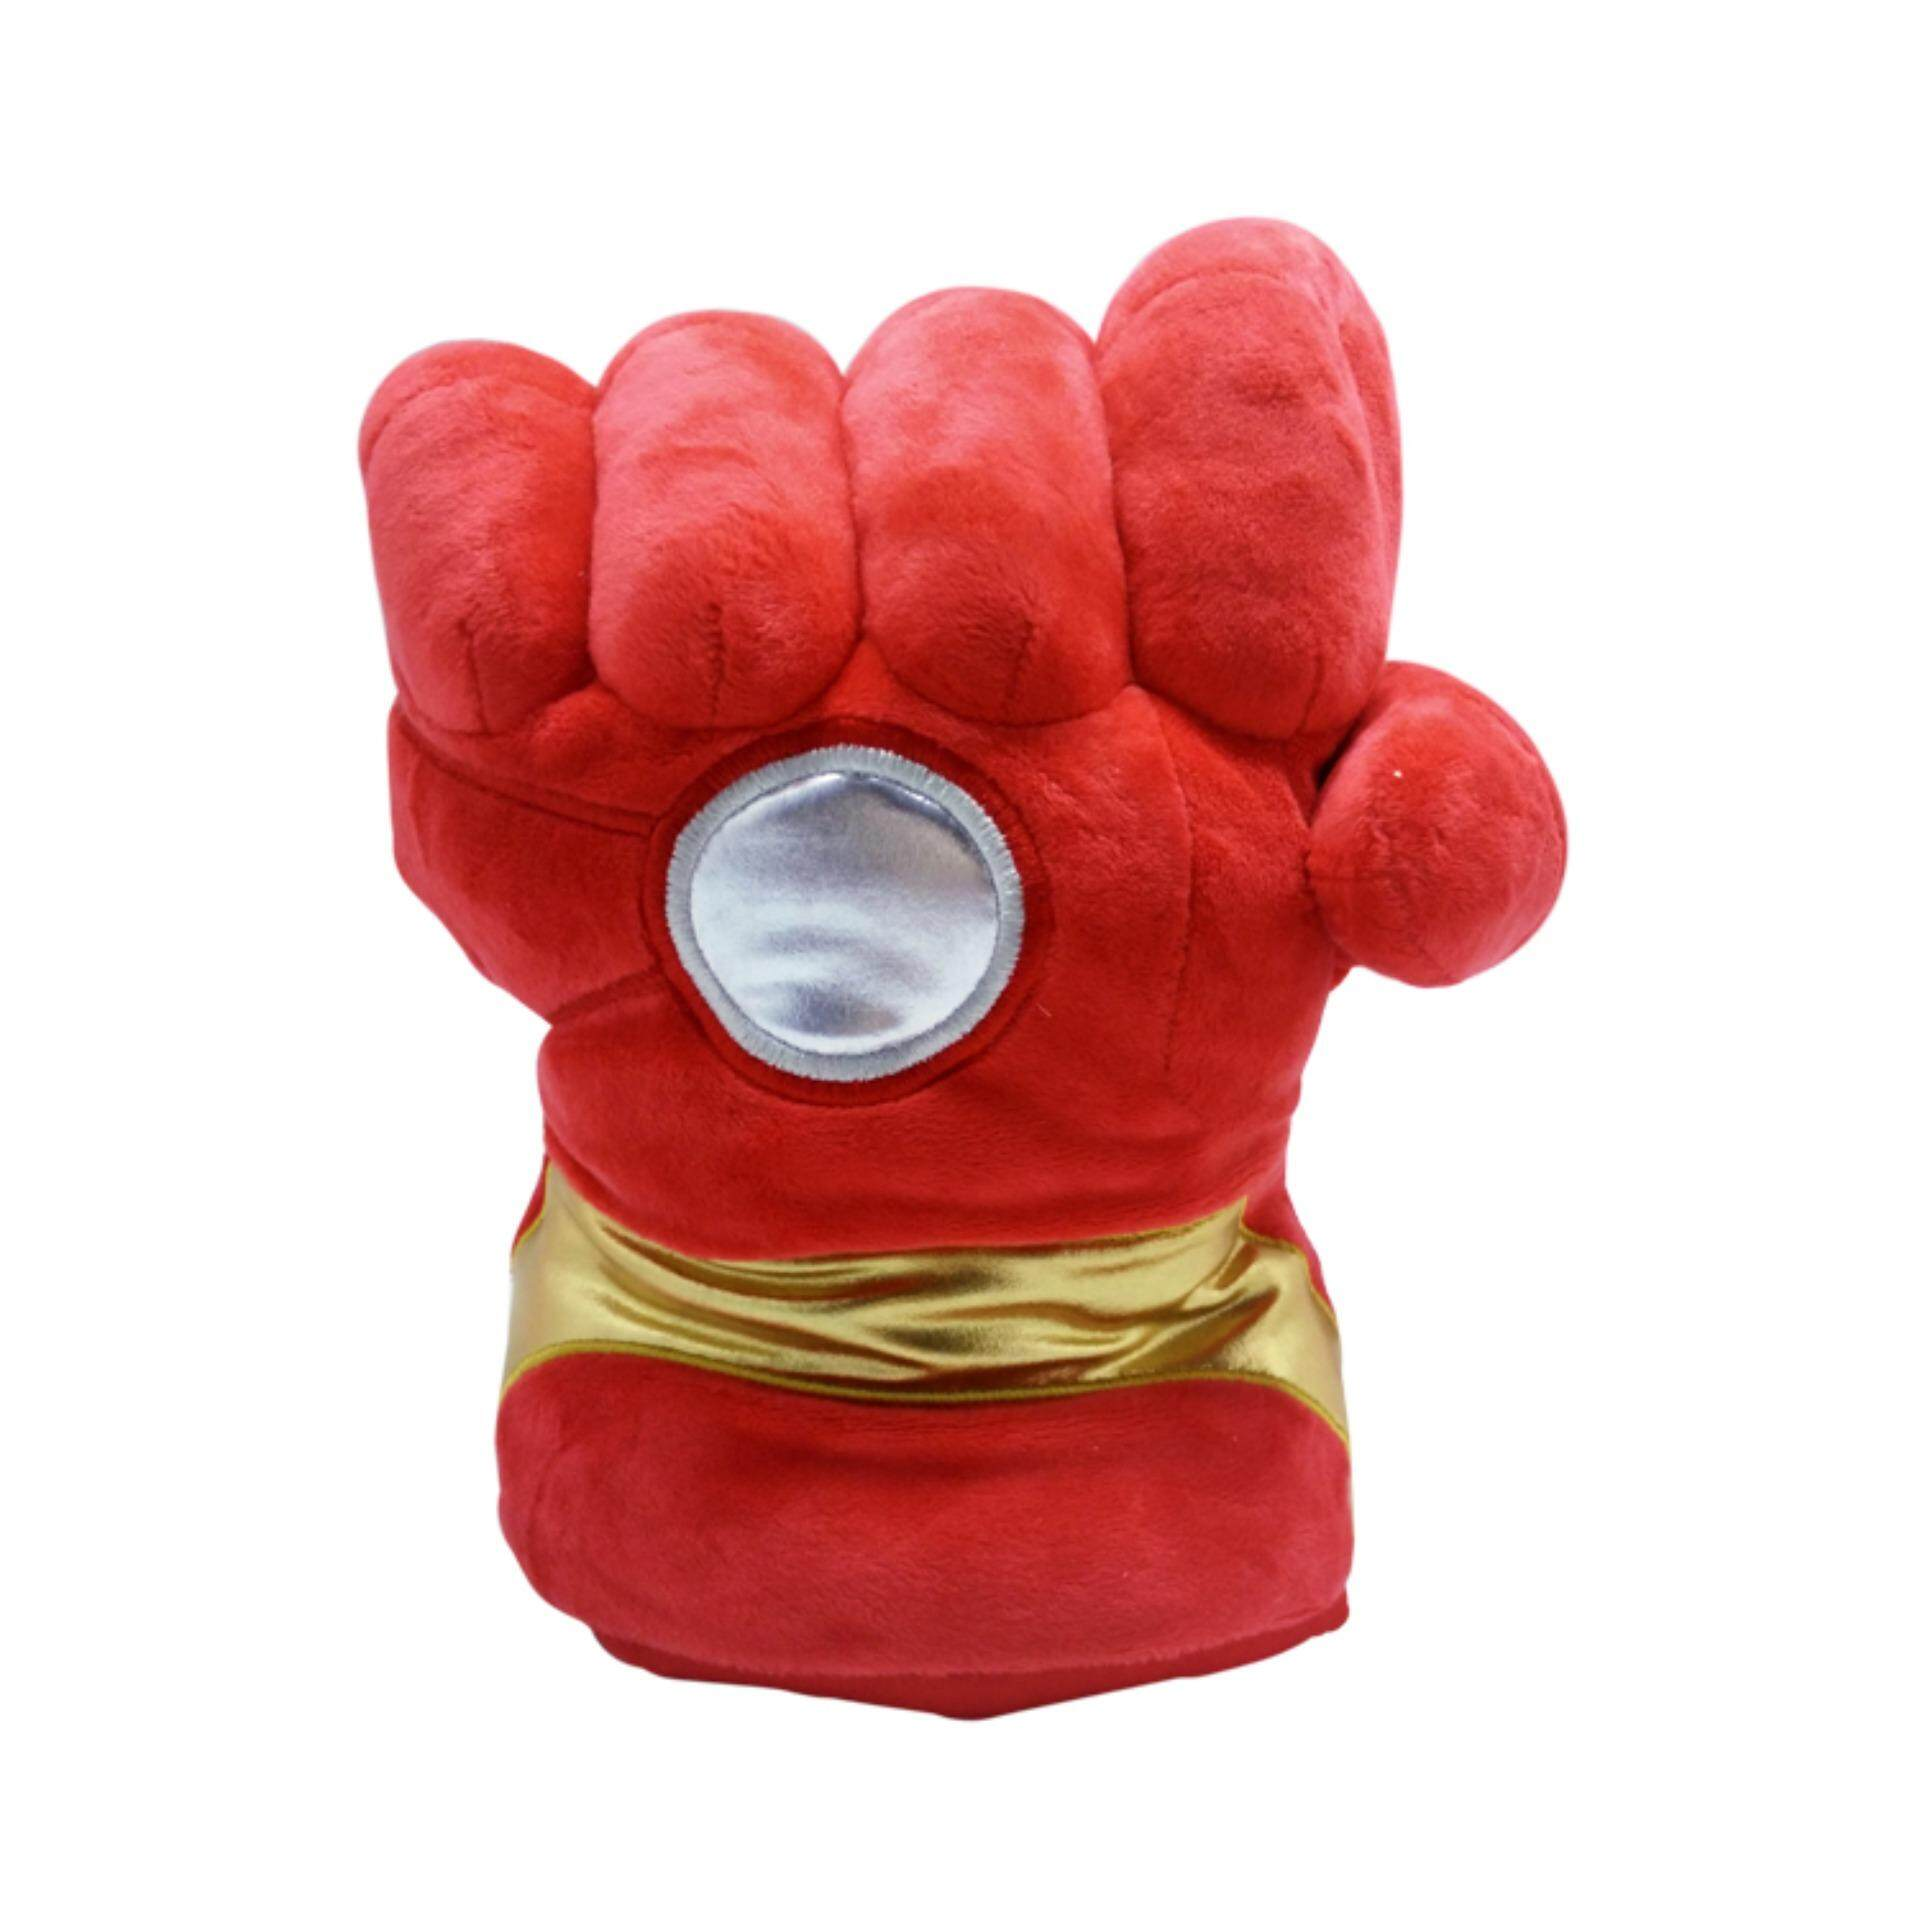 Marvel Avengers Ironman Fist Plush Toy 11 Inches - Red Colour